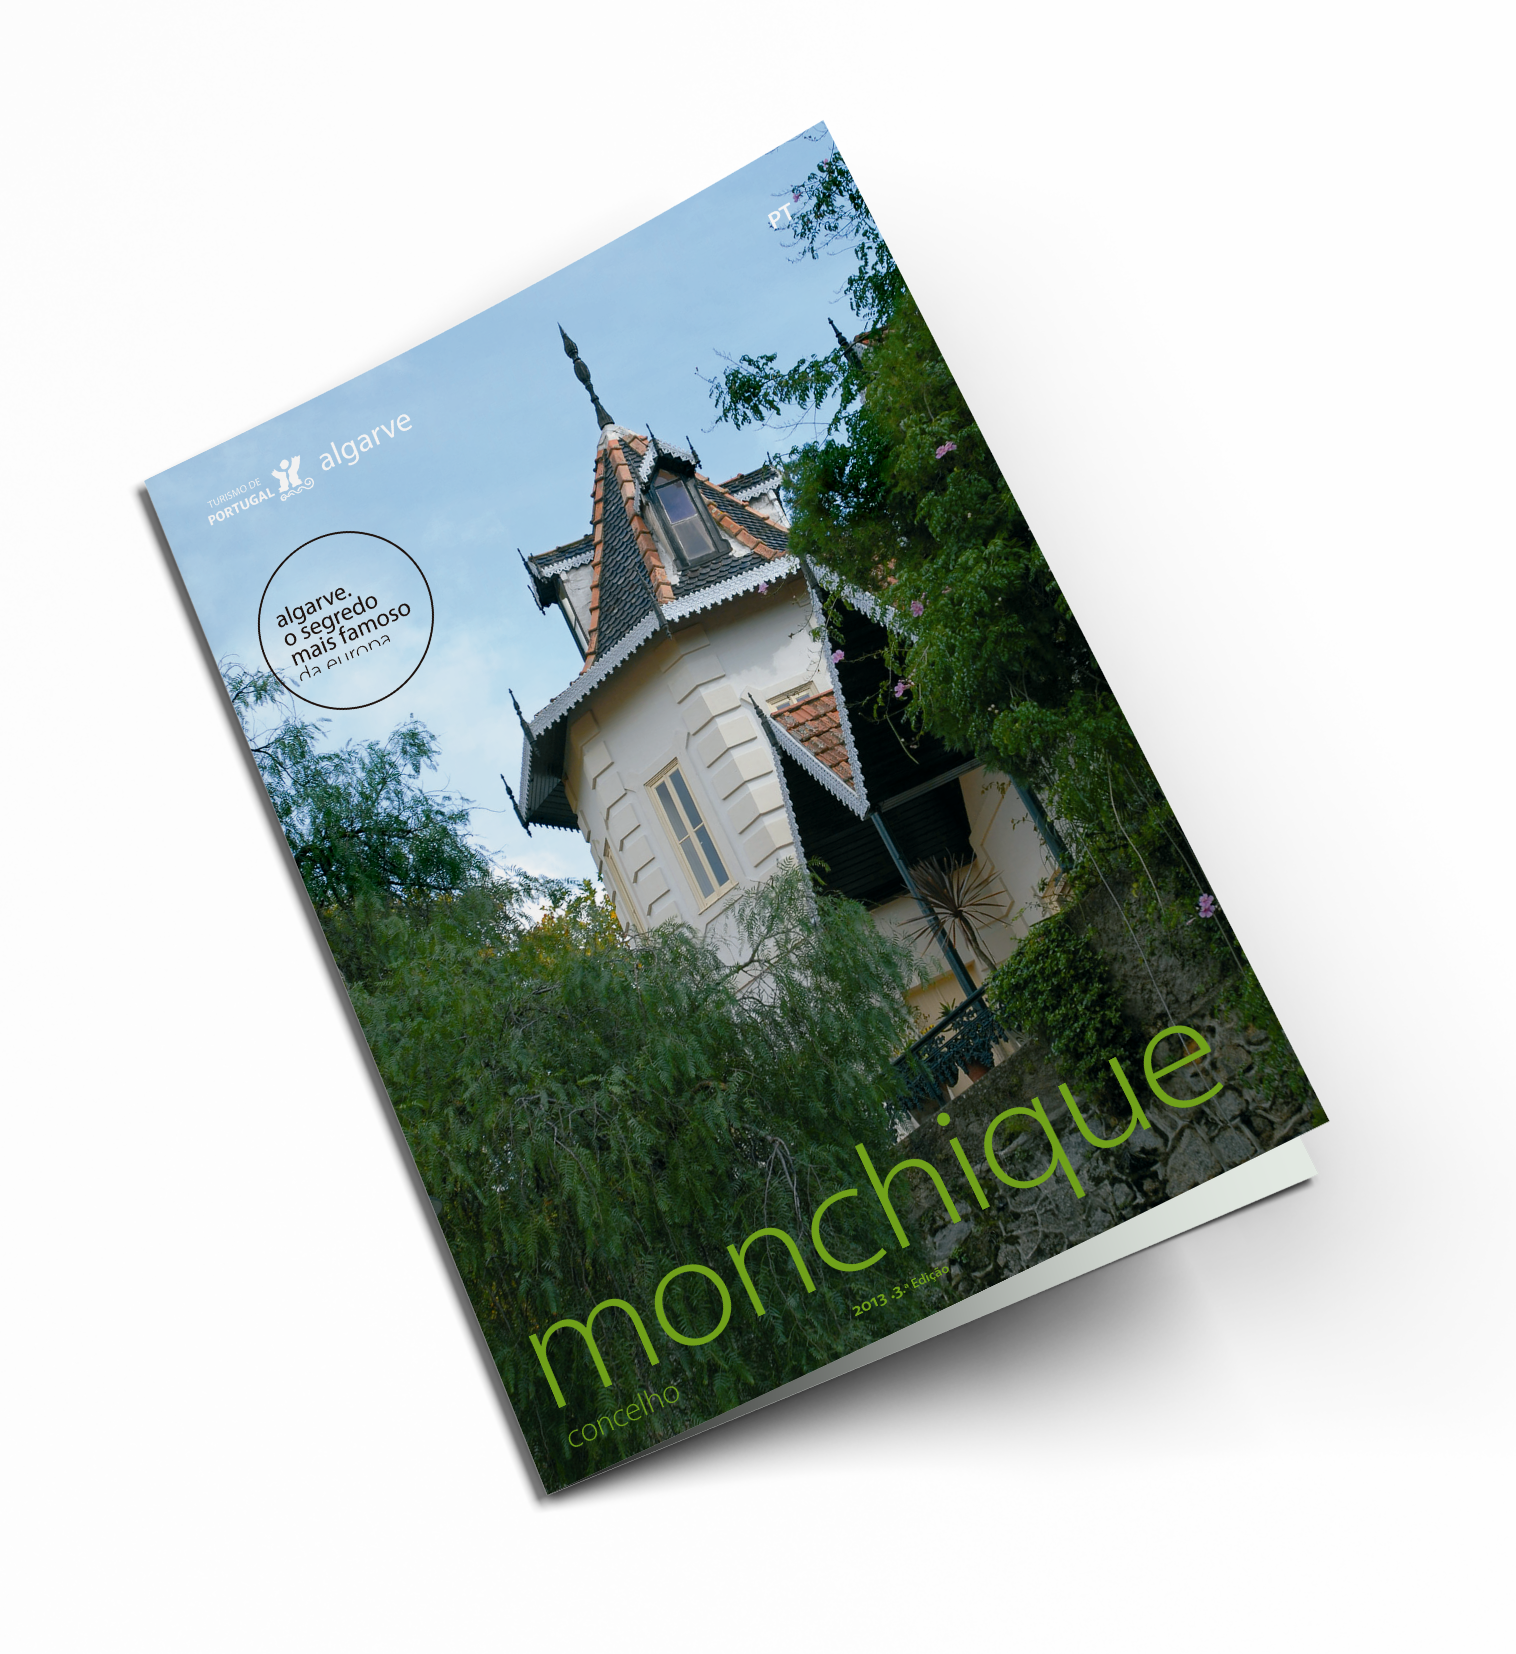 Monchique